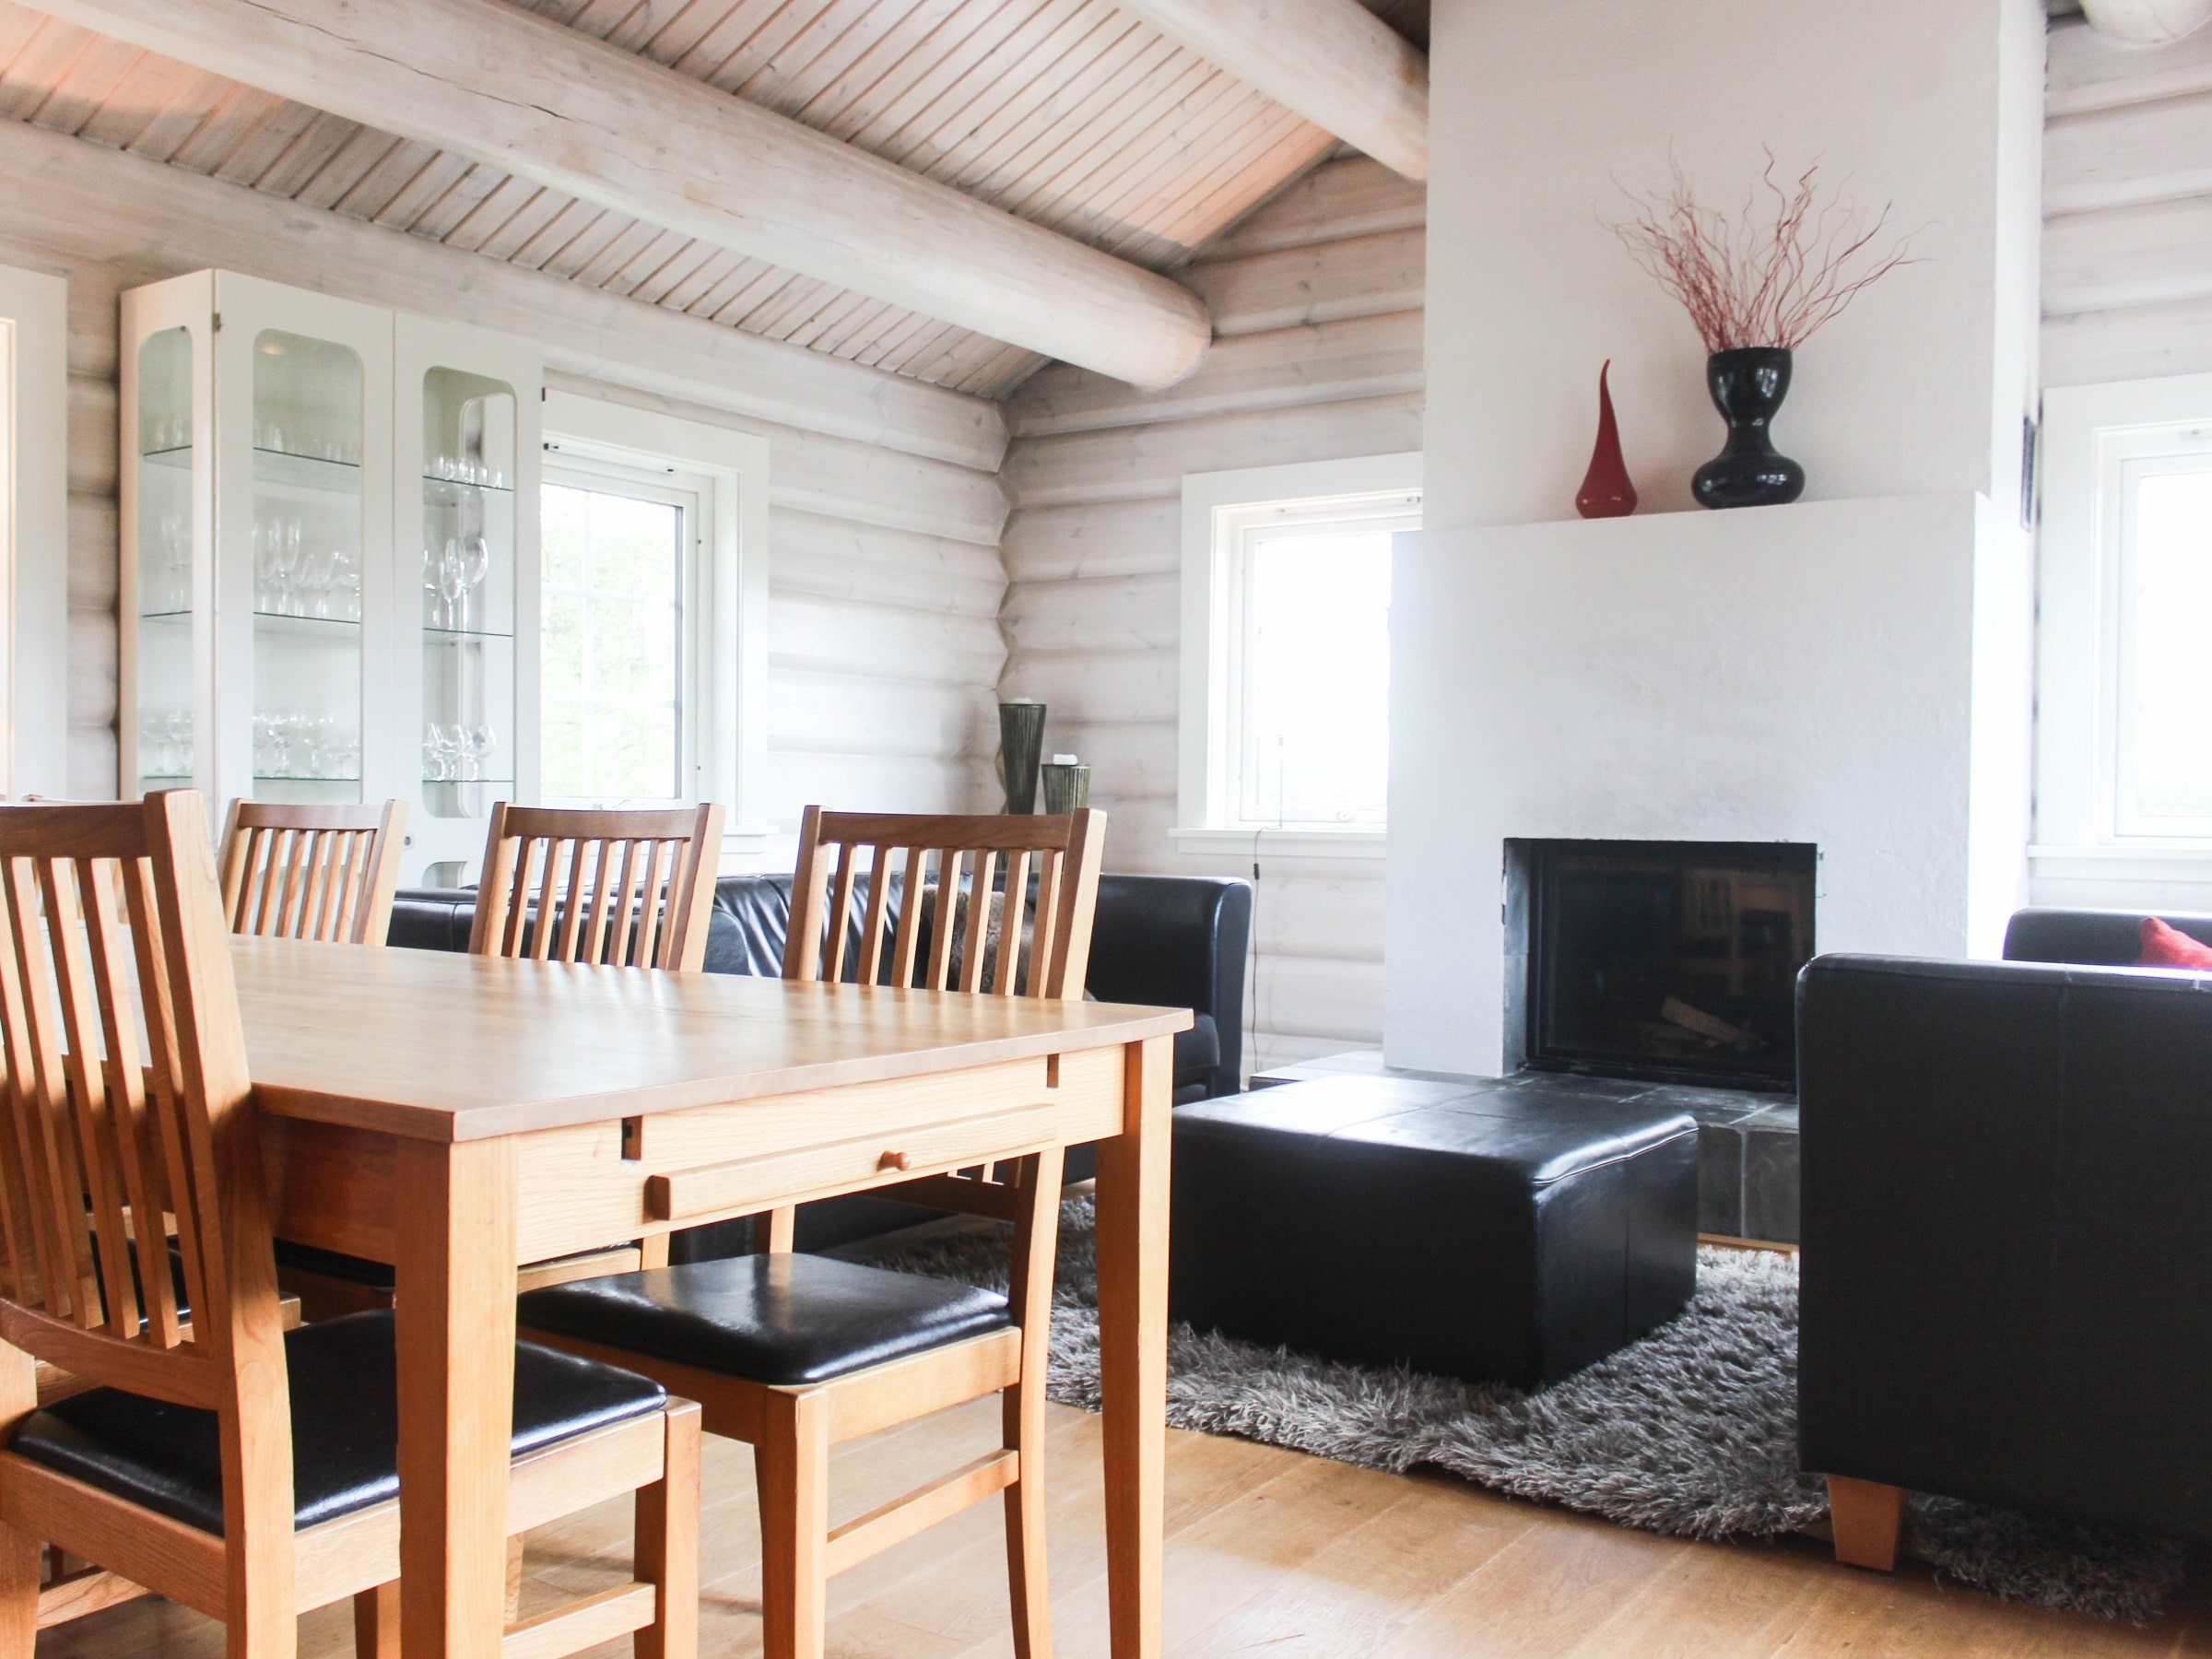 View of living room and dining table in Bjönängelägret 6 in Åre